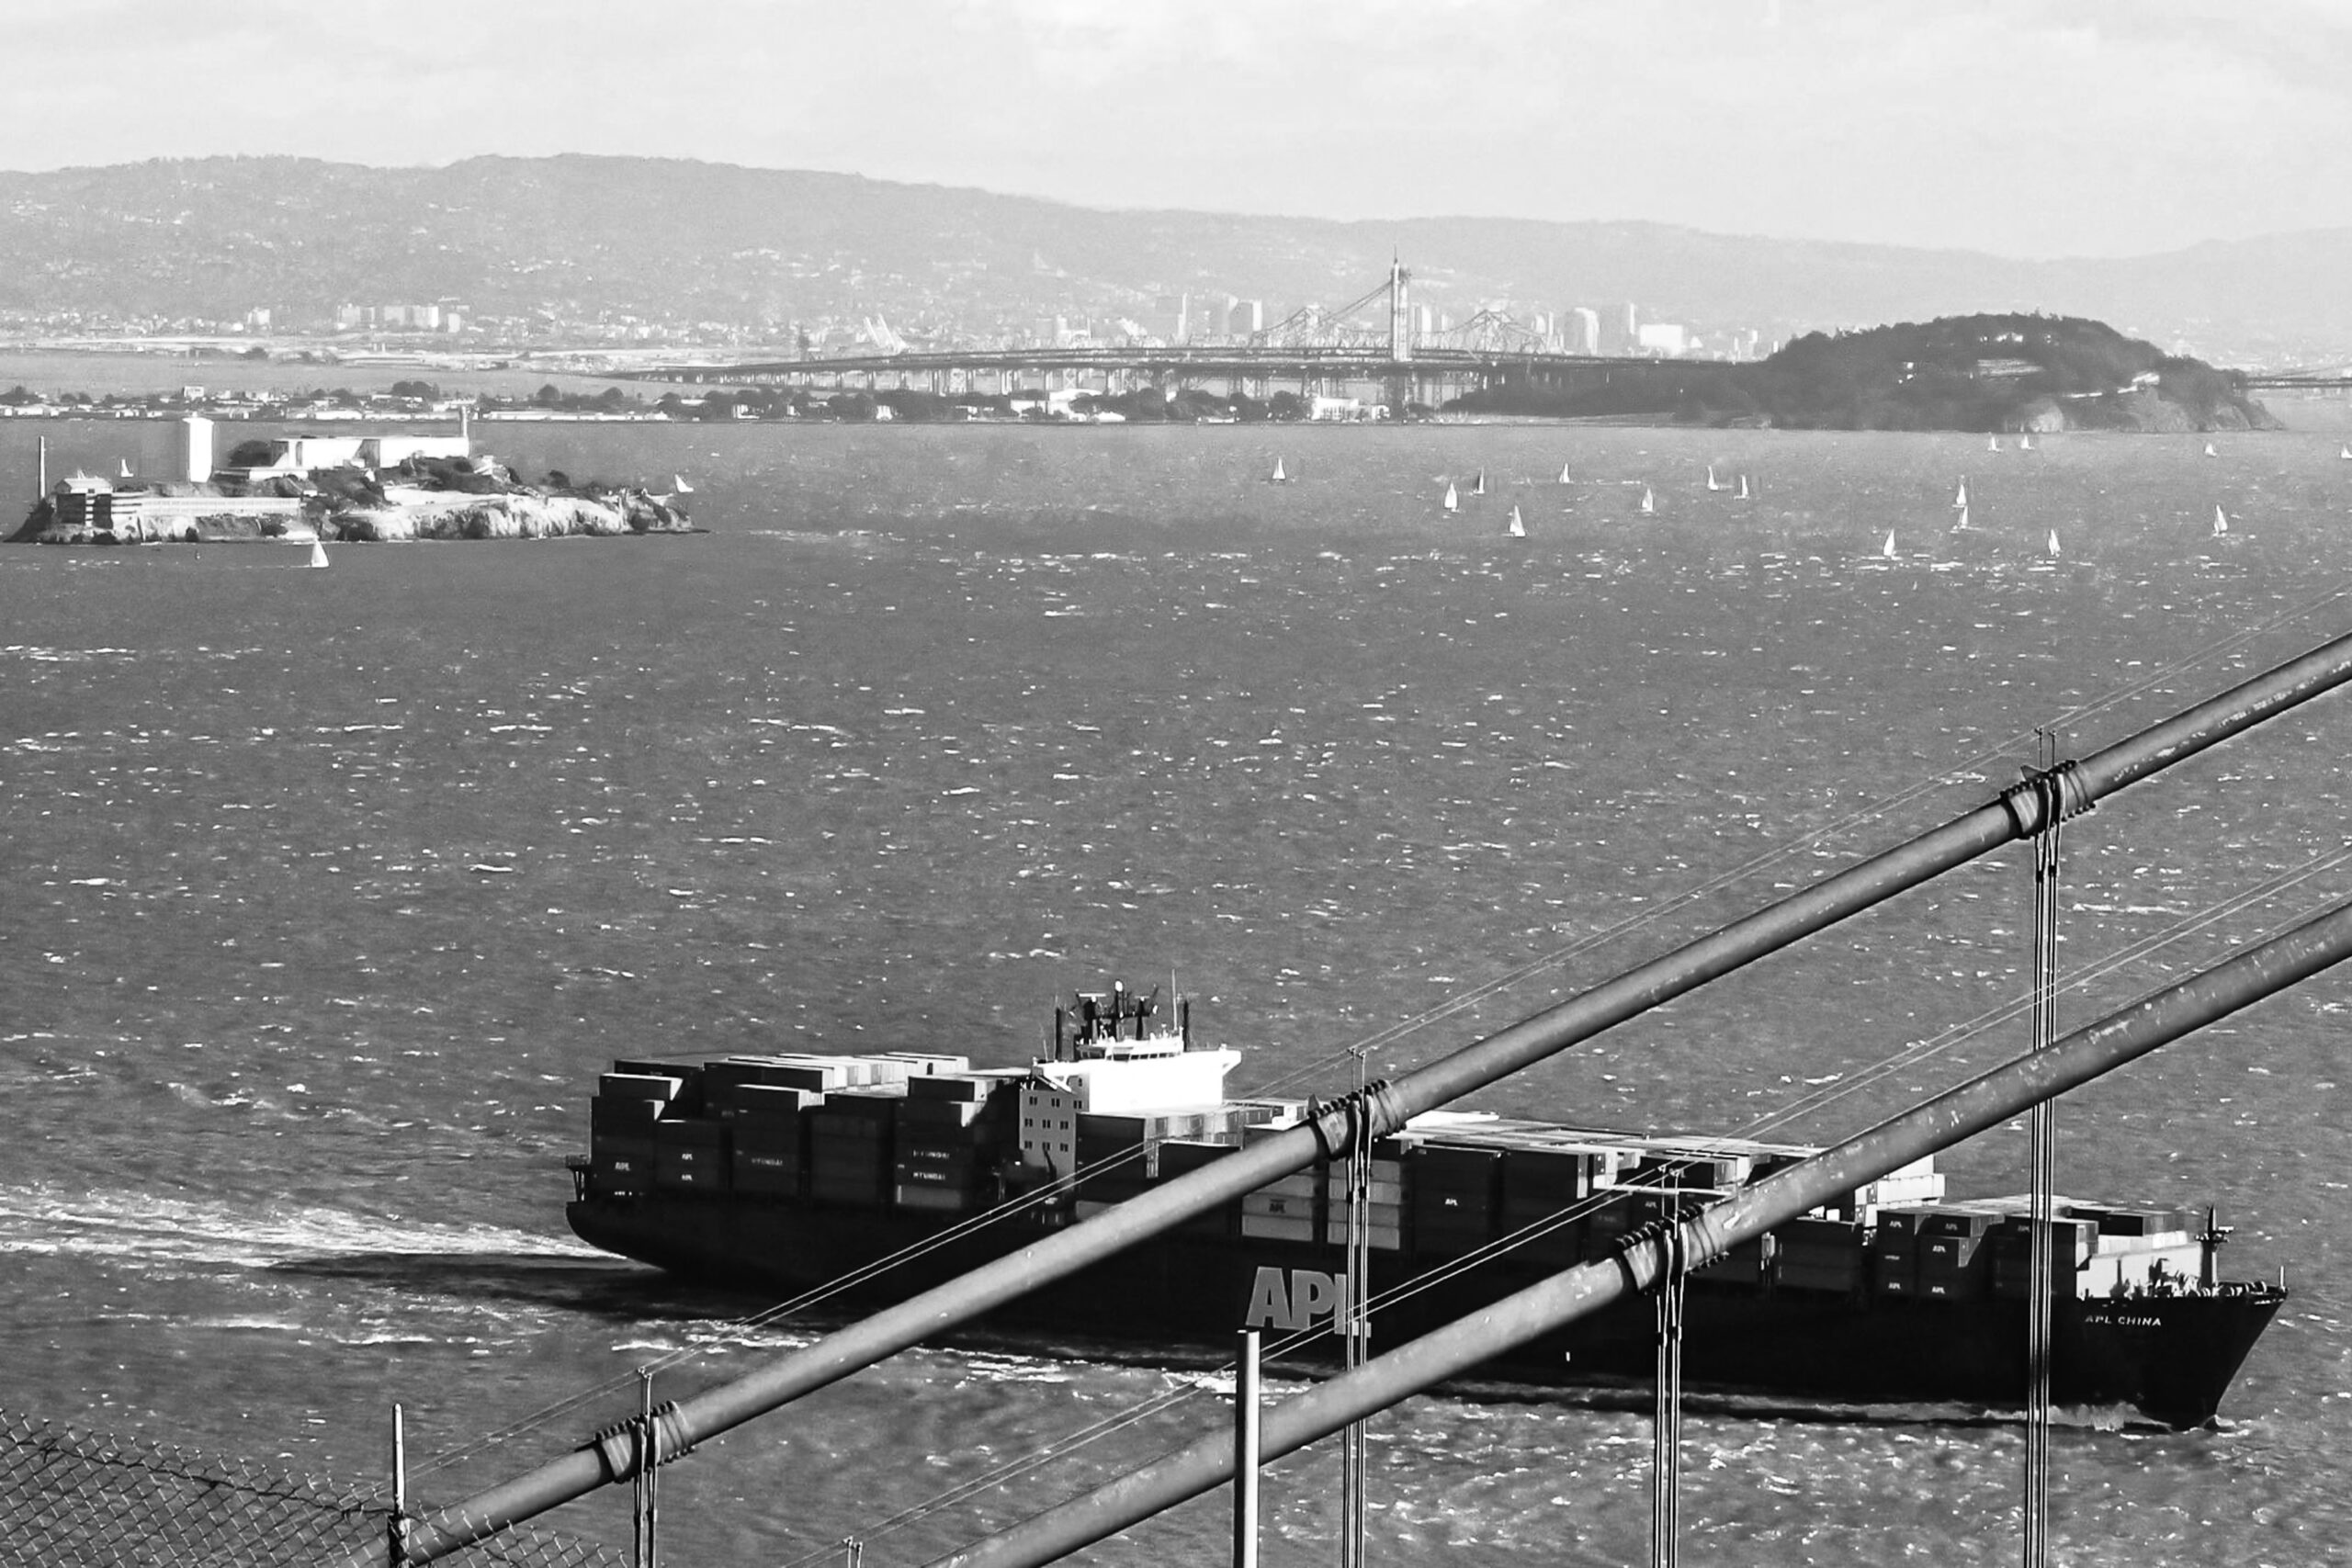 San Francisco Bay, Look to Alcatraz, Oakland Bay Bridge, Yerba Buena Island